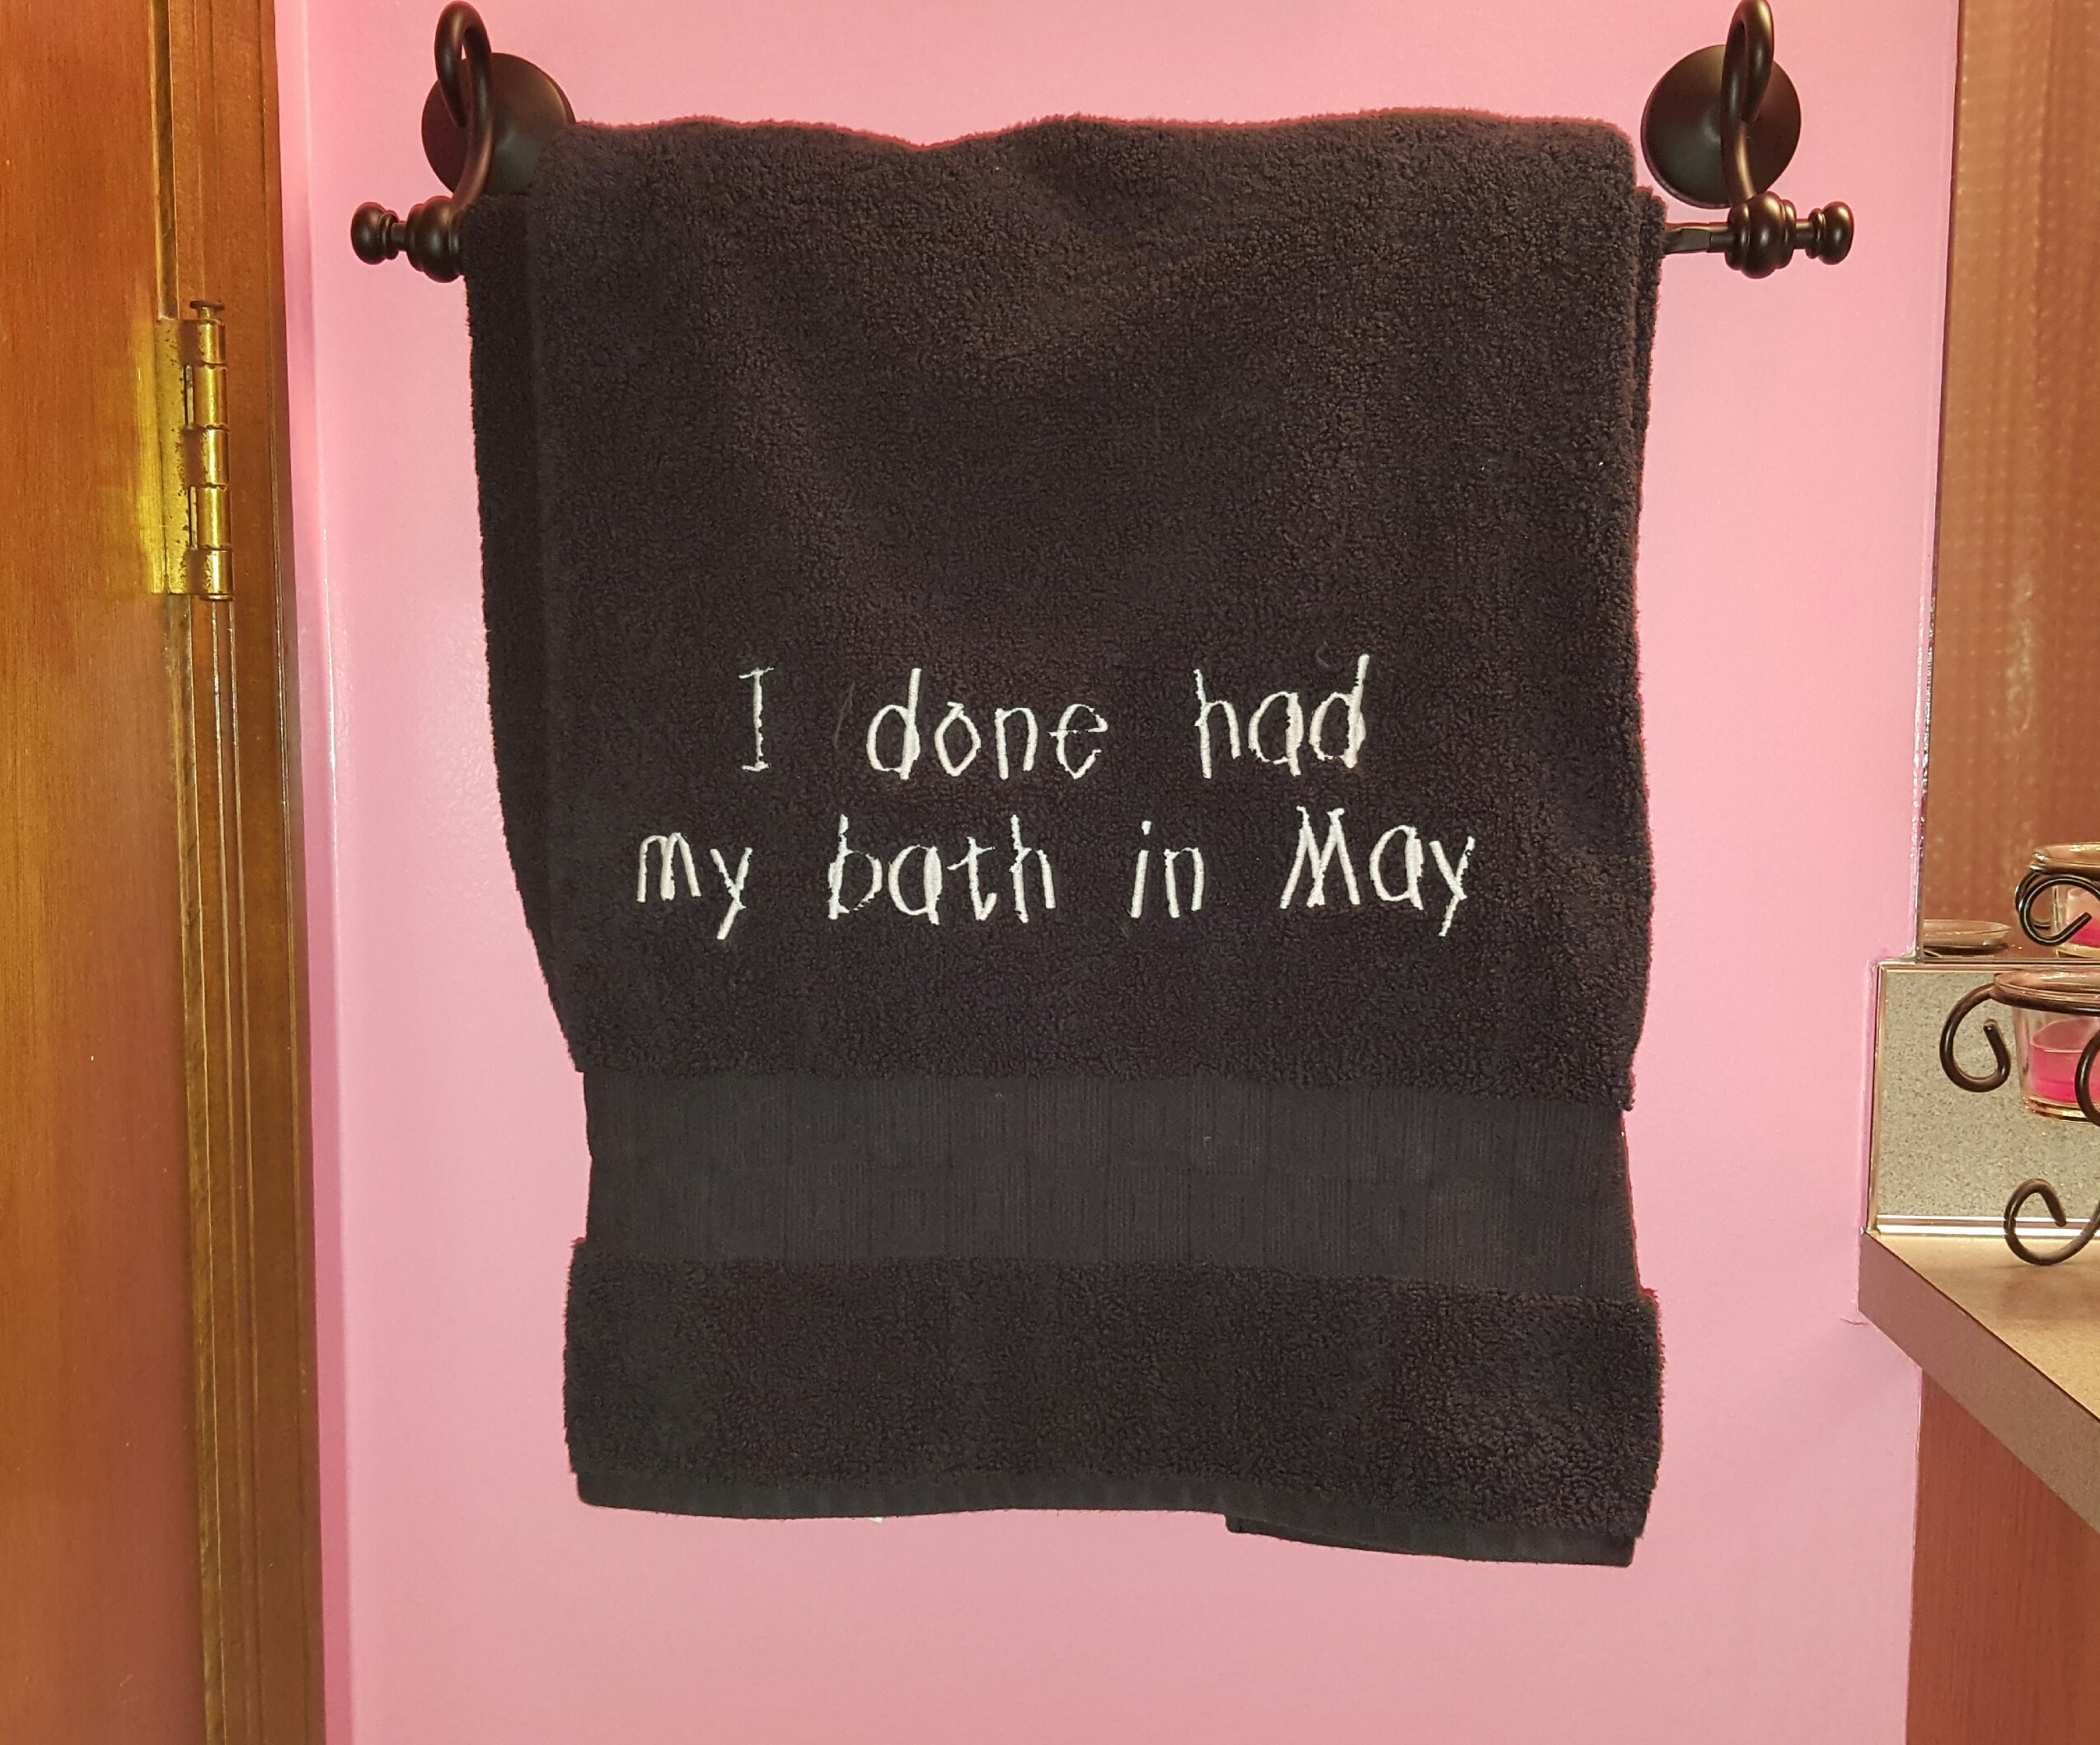 I done had my bath in May bath towel!